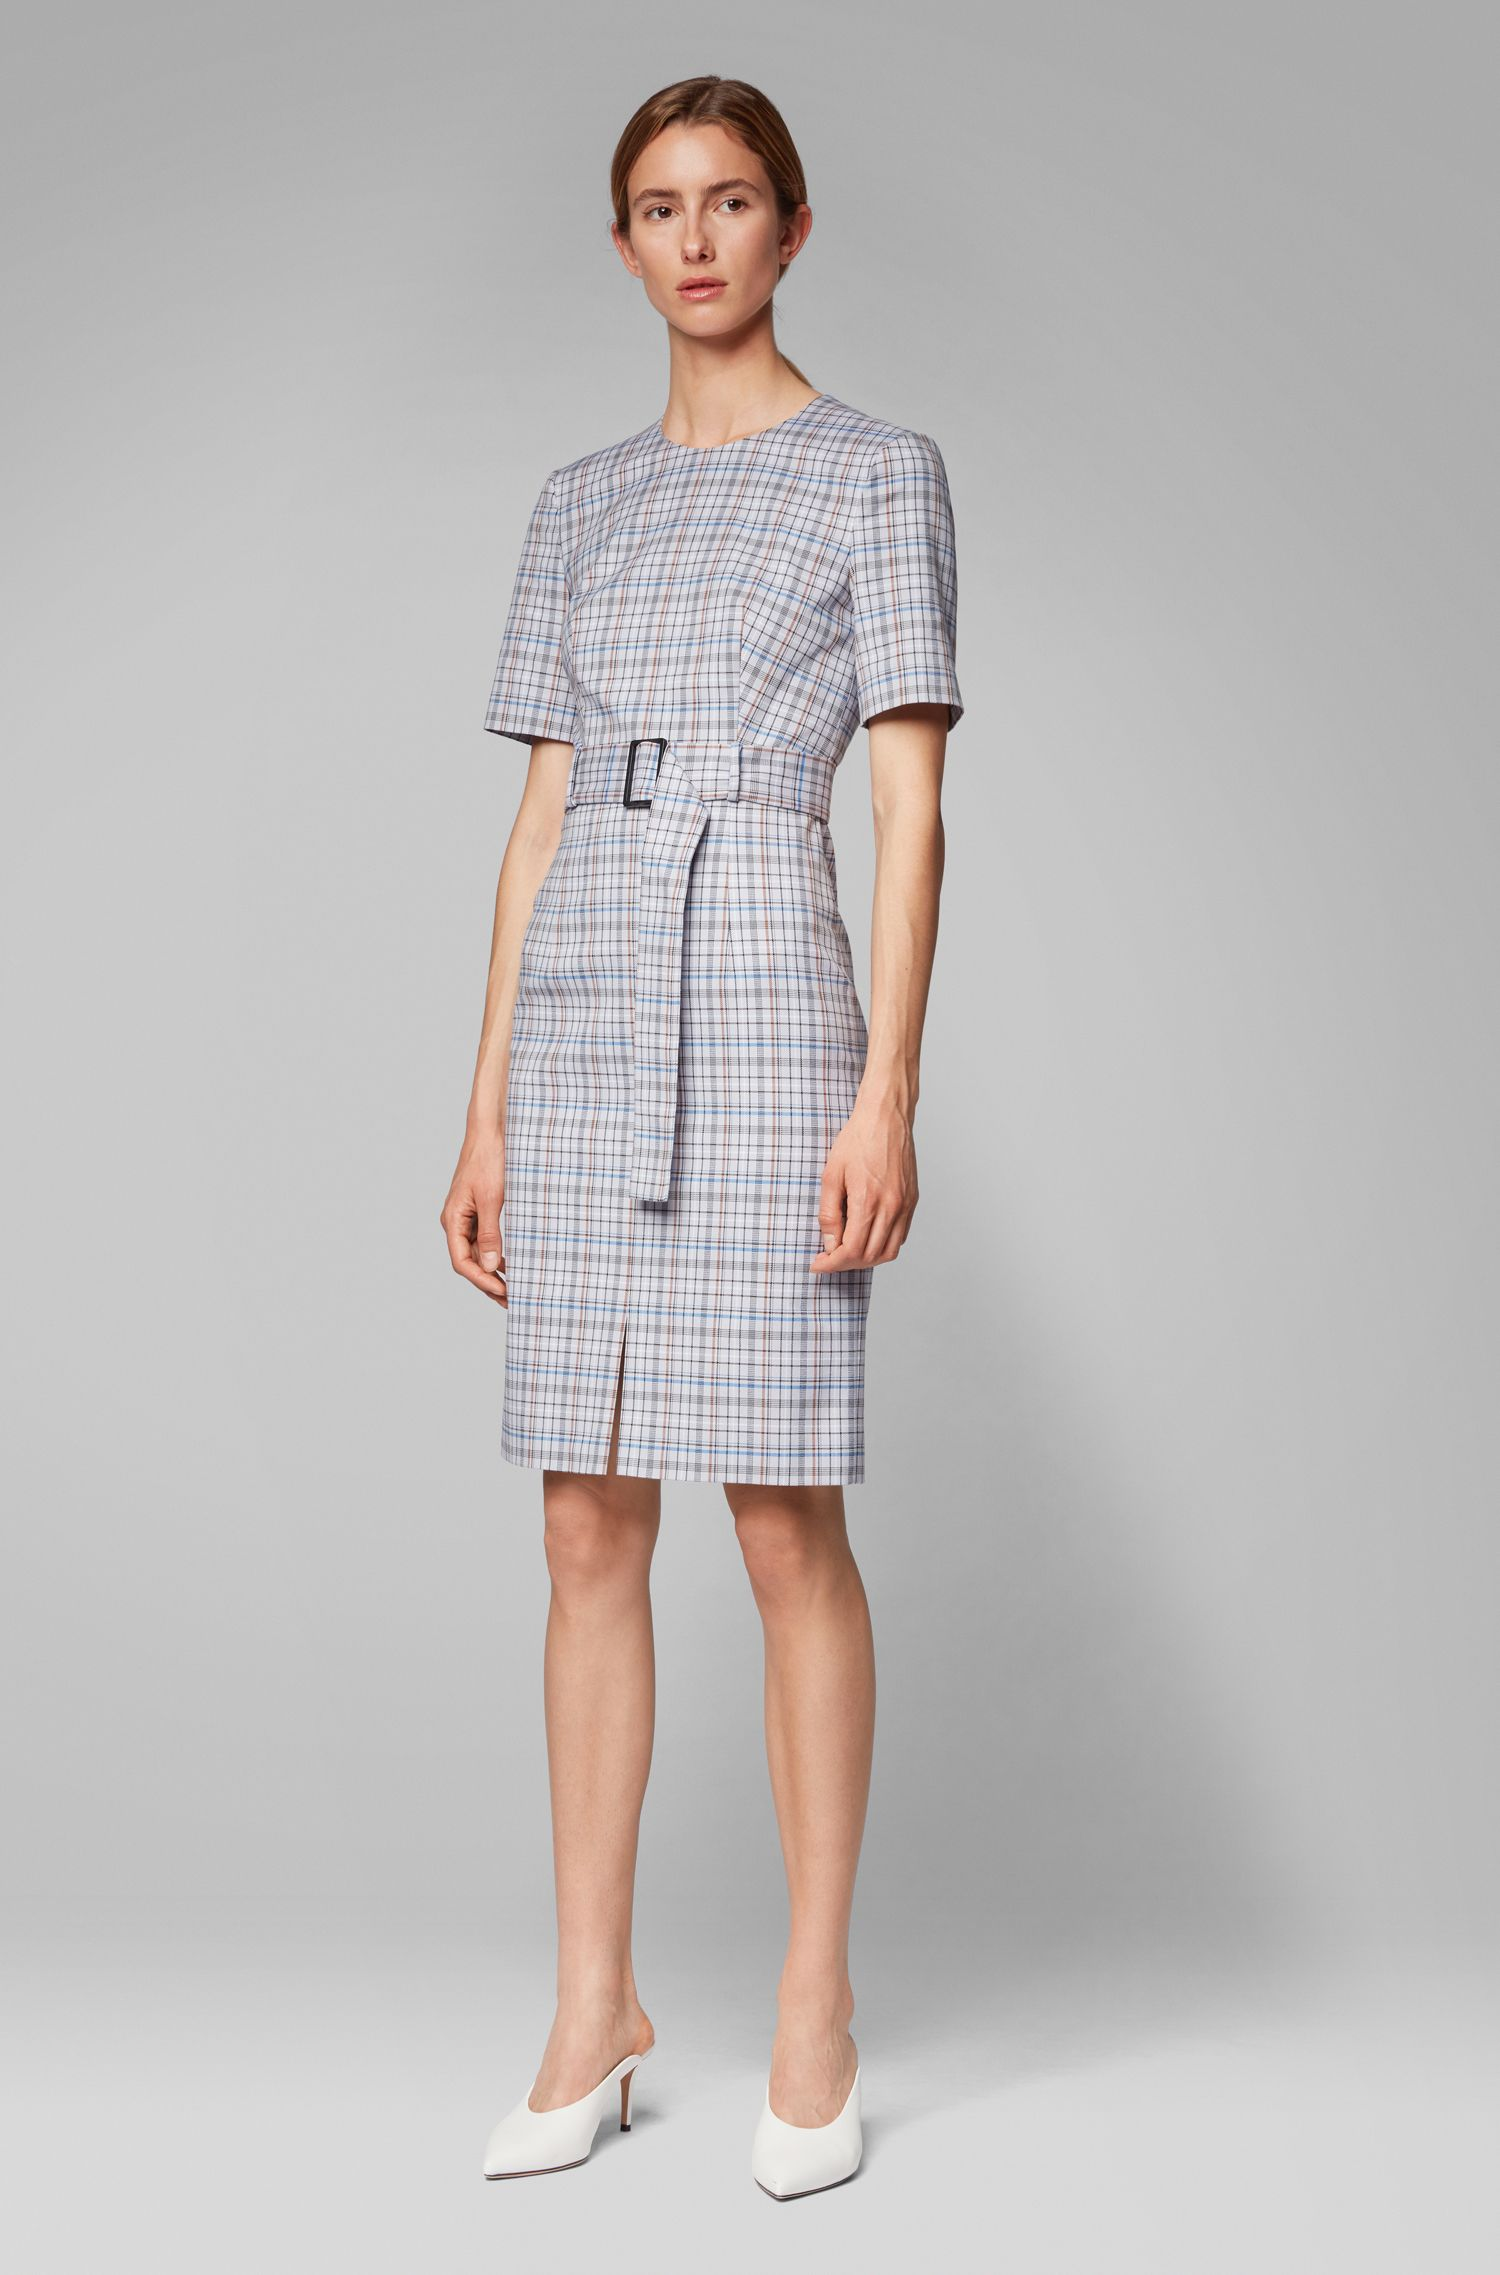 Short-sleeved shift dress in checked Italian fabric, Patterned